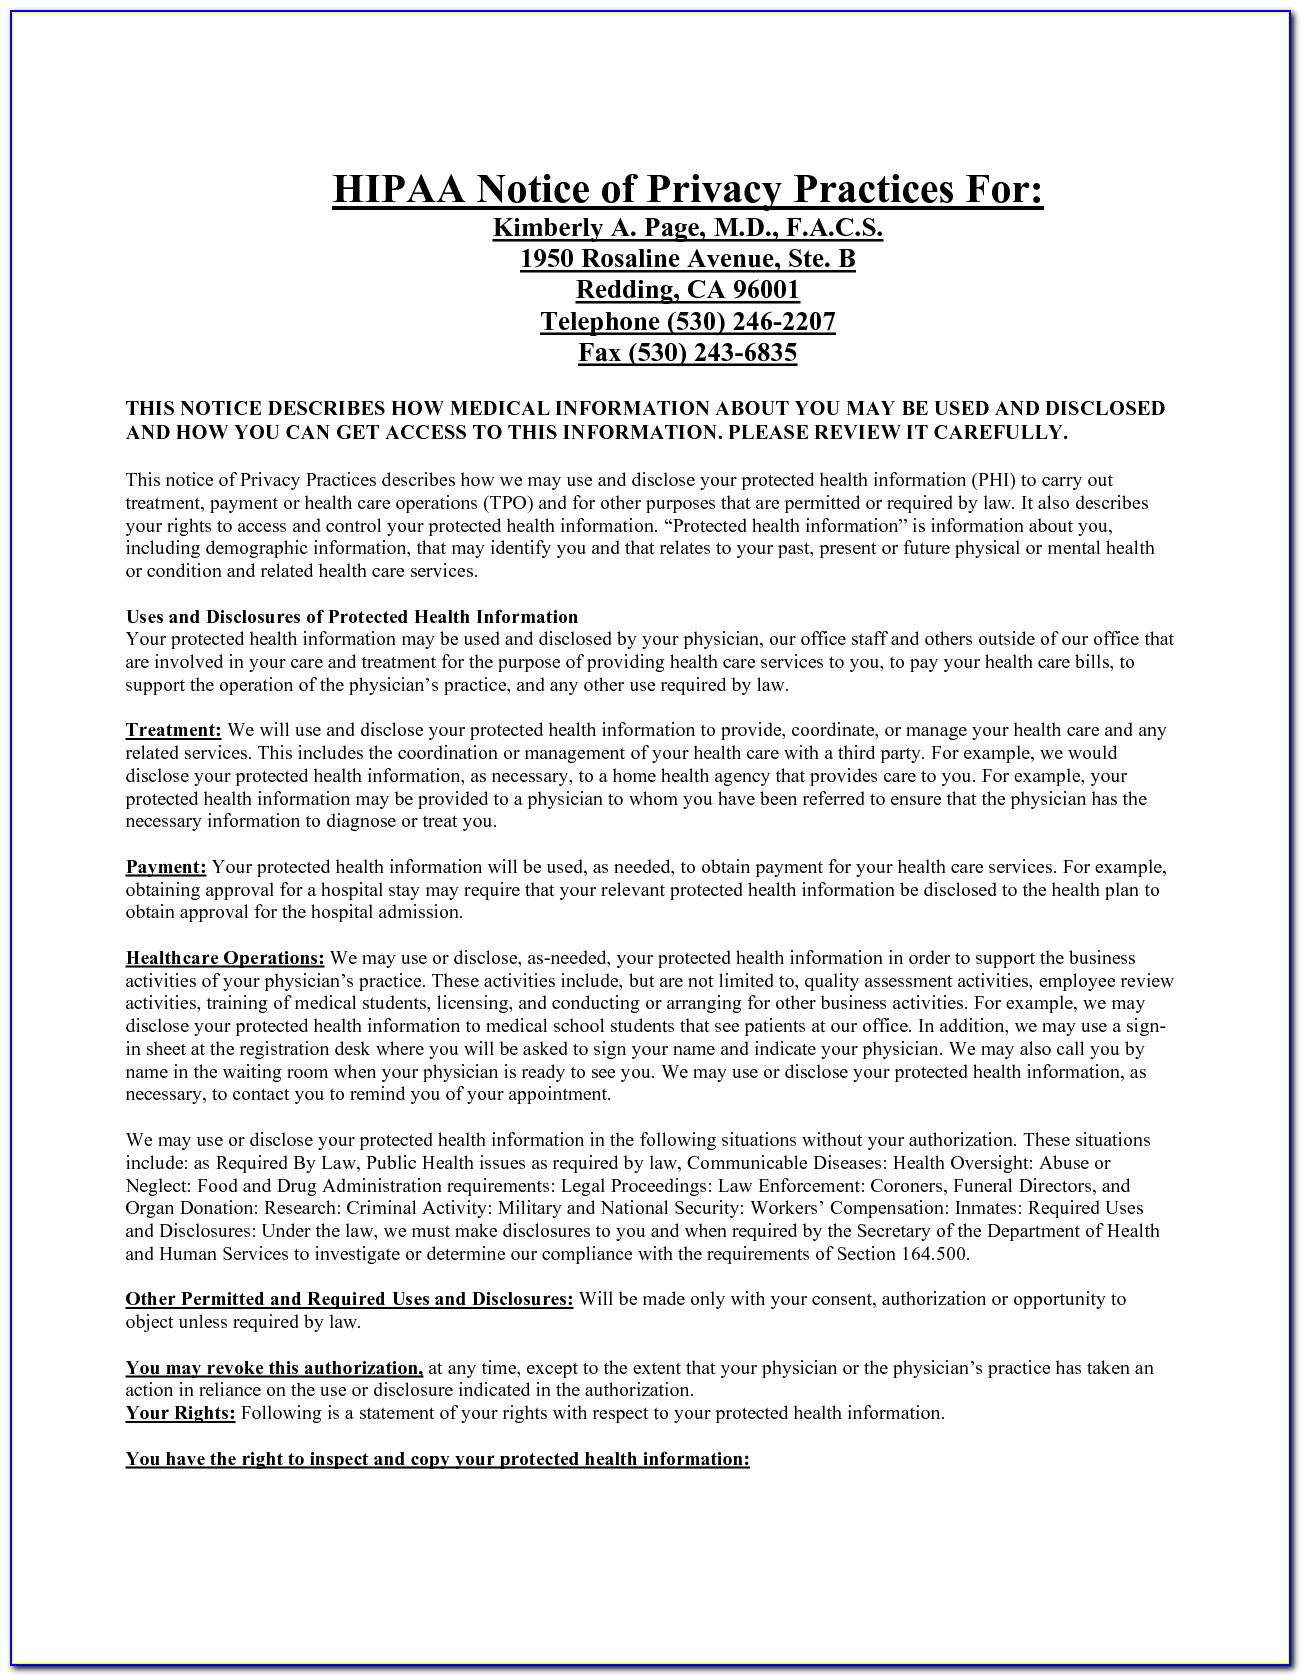 Hipaa Privacy Rule Employee Confidentiality Form